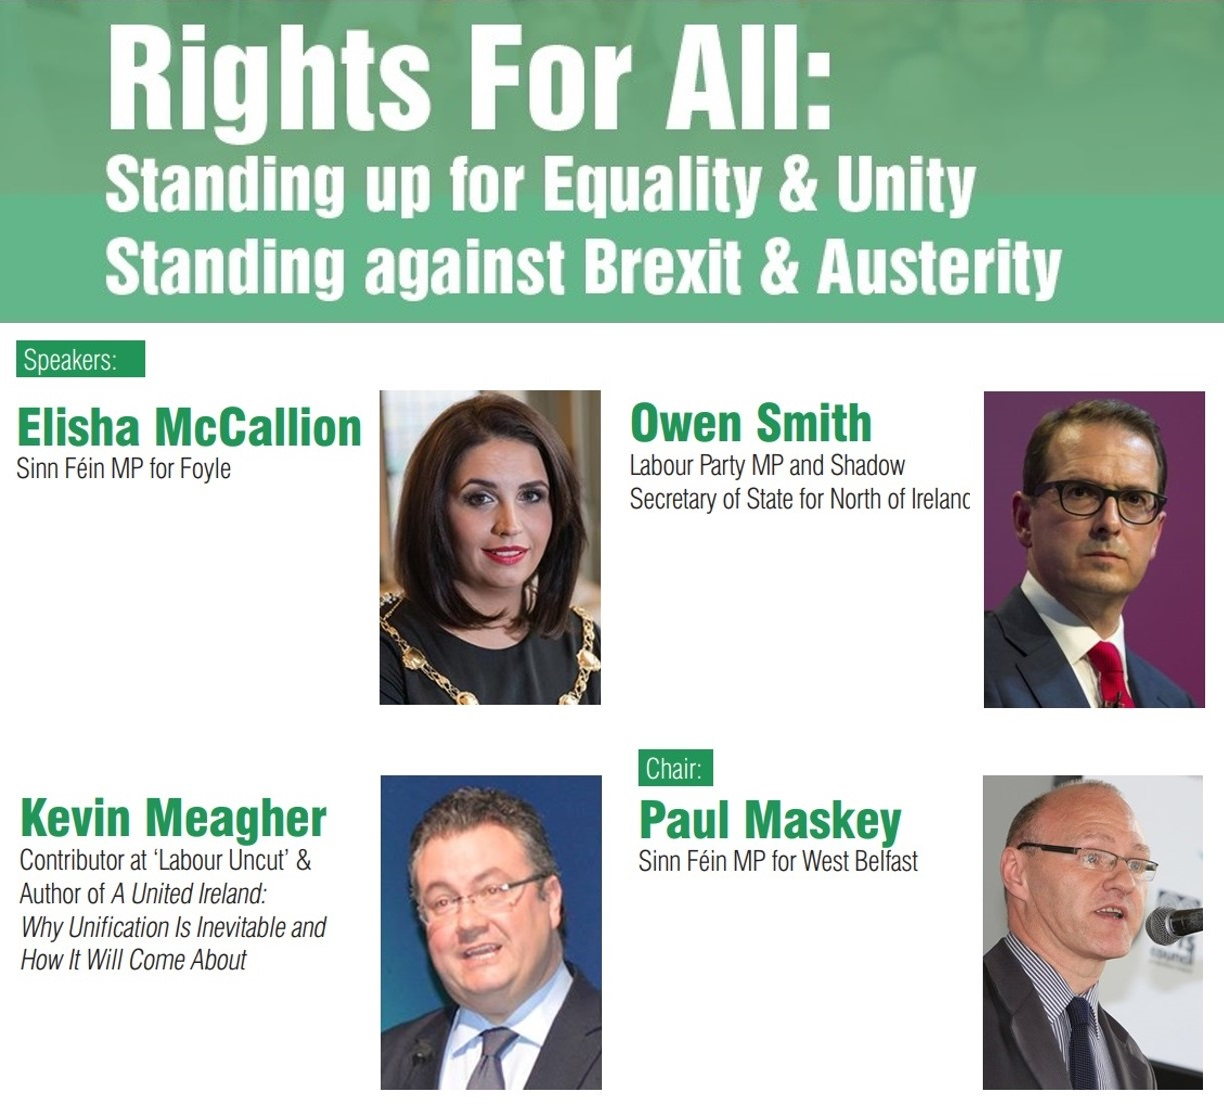 Rights4All